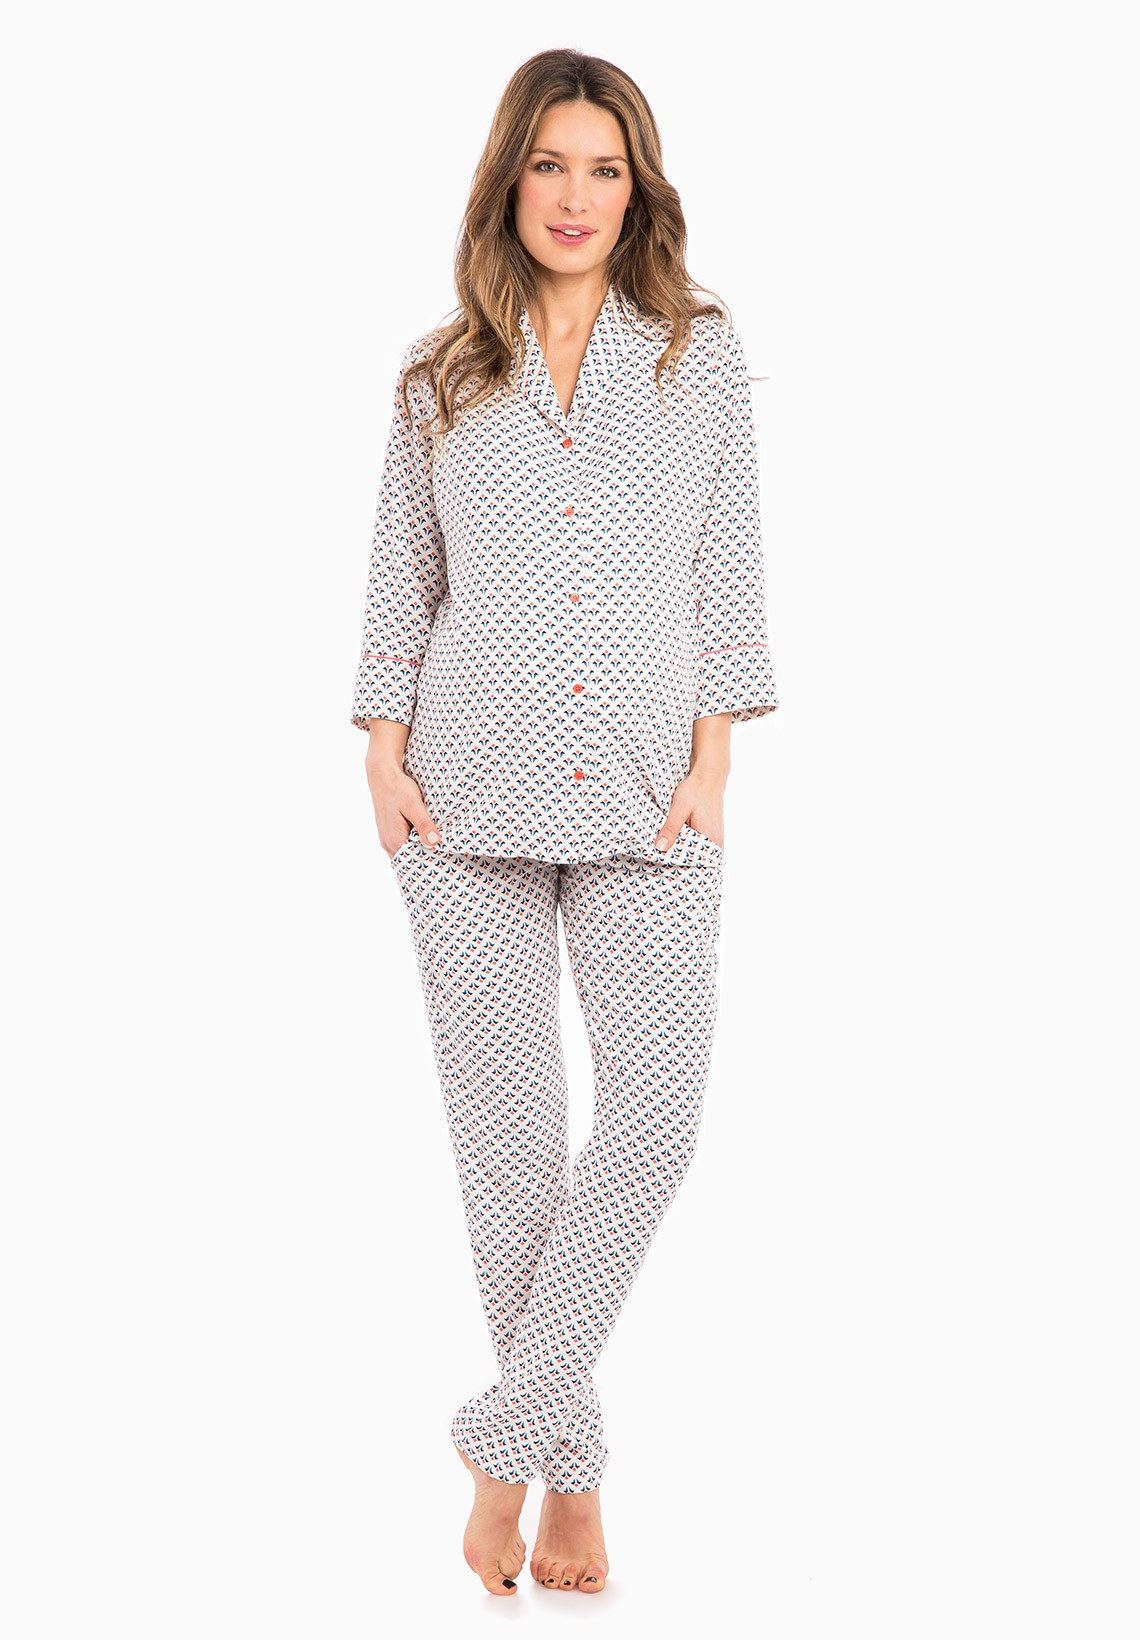 maternity nightwear. A sound night's sleep during pregnancy can sometimes seem like a distant dream. Up your chances of a blissful eight hours with our range of maternity nightwear.